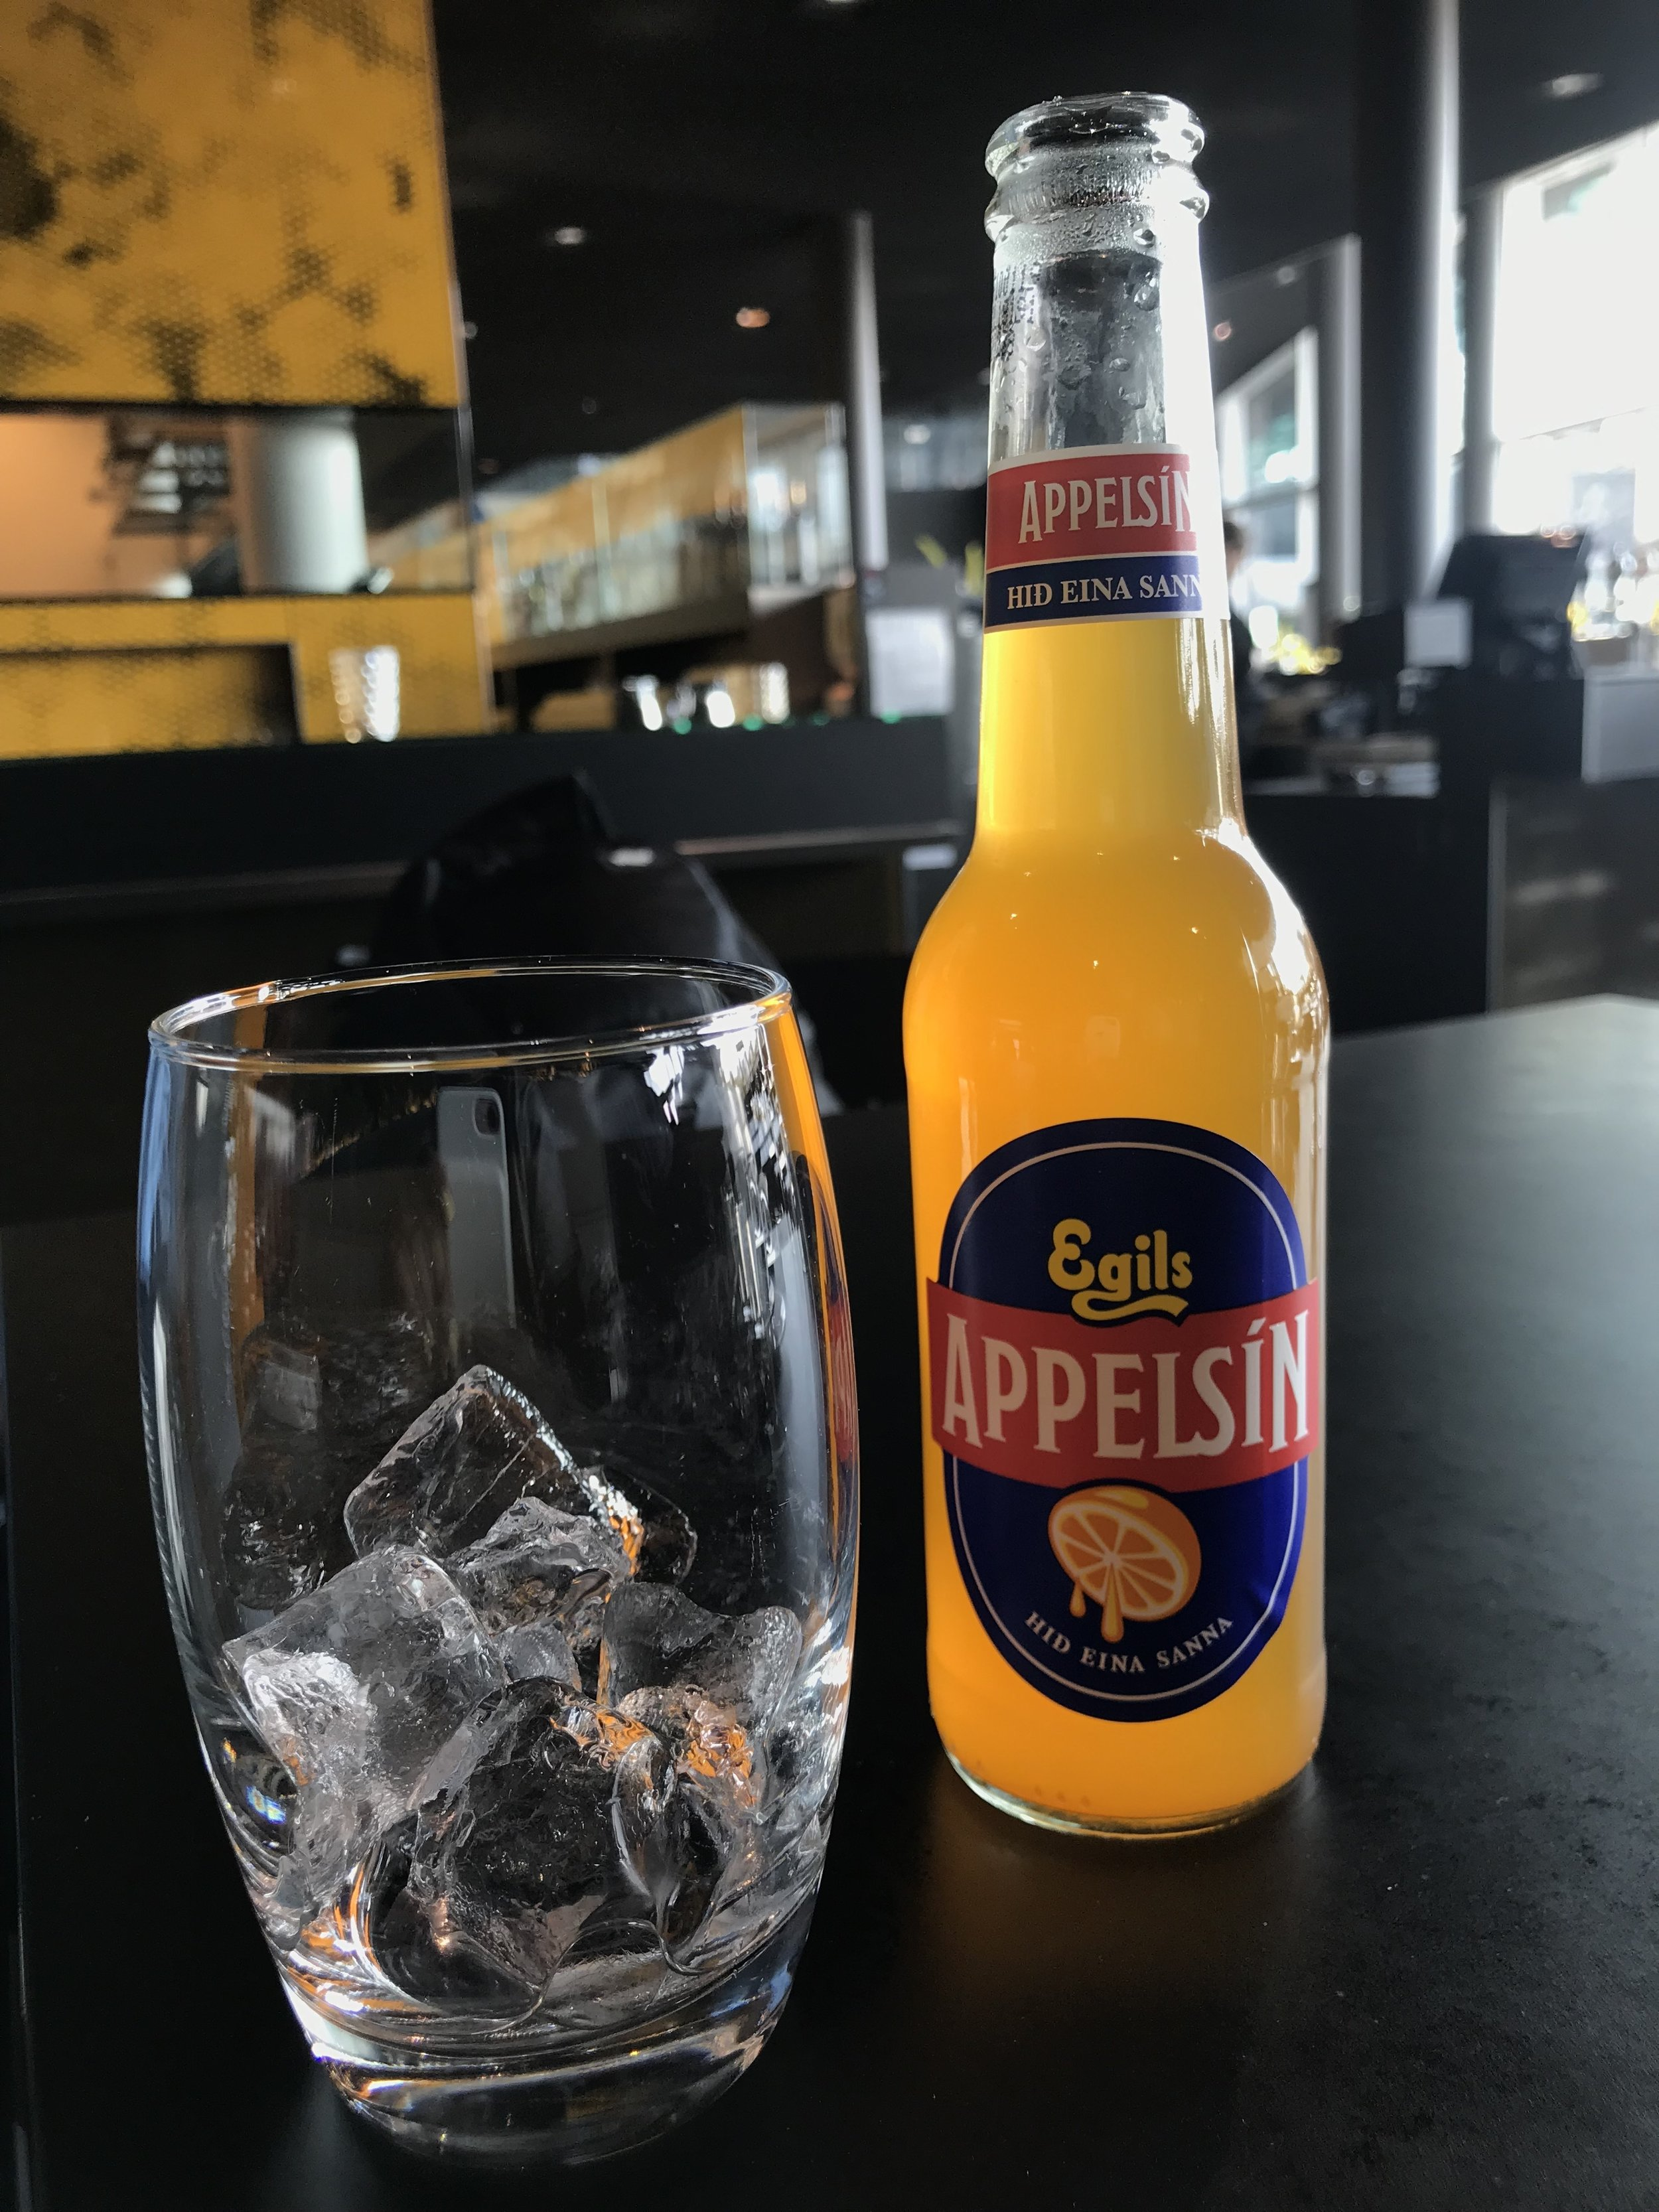 So obviously, this is a drink and not food, but this was an Icelandic orange soda. I had to commemorate it because it was the first thing I had when I got to Reykjavik. It was at the Harpa Museum restaurant. Highly recommend the Harpa if you ever visit.